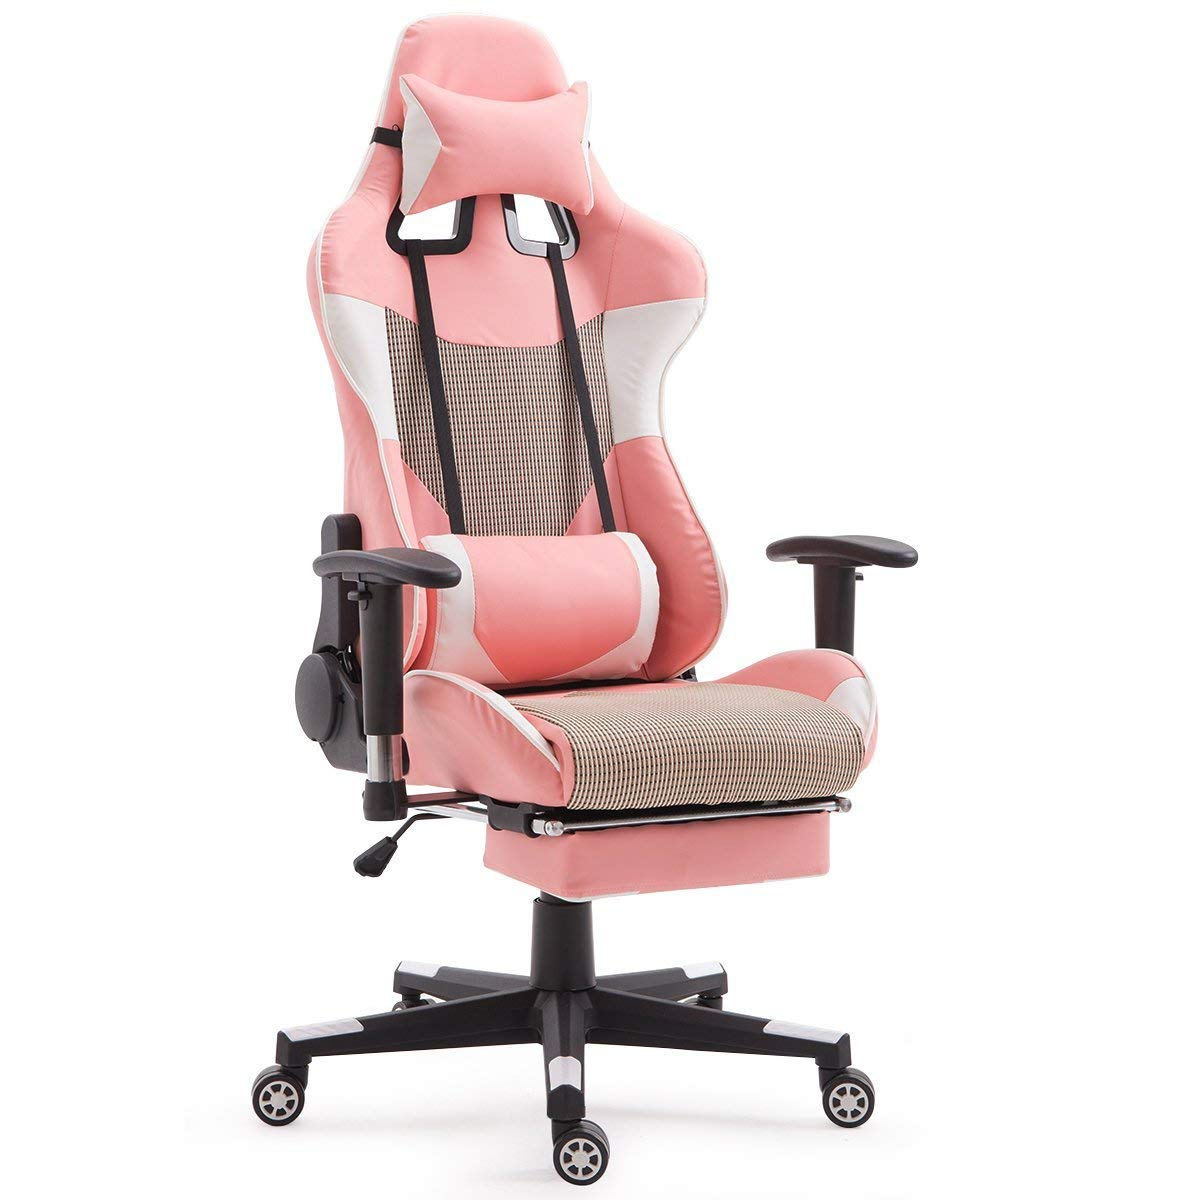 Casart Gaming Chair Racing Style High Back Ergonomic Office Chair Executive Swivel Computer Desk Chair Height Adjustable Task Chair Reclining